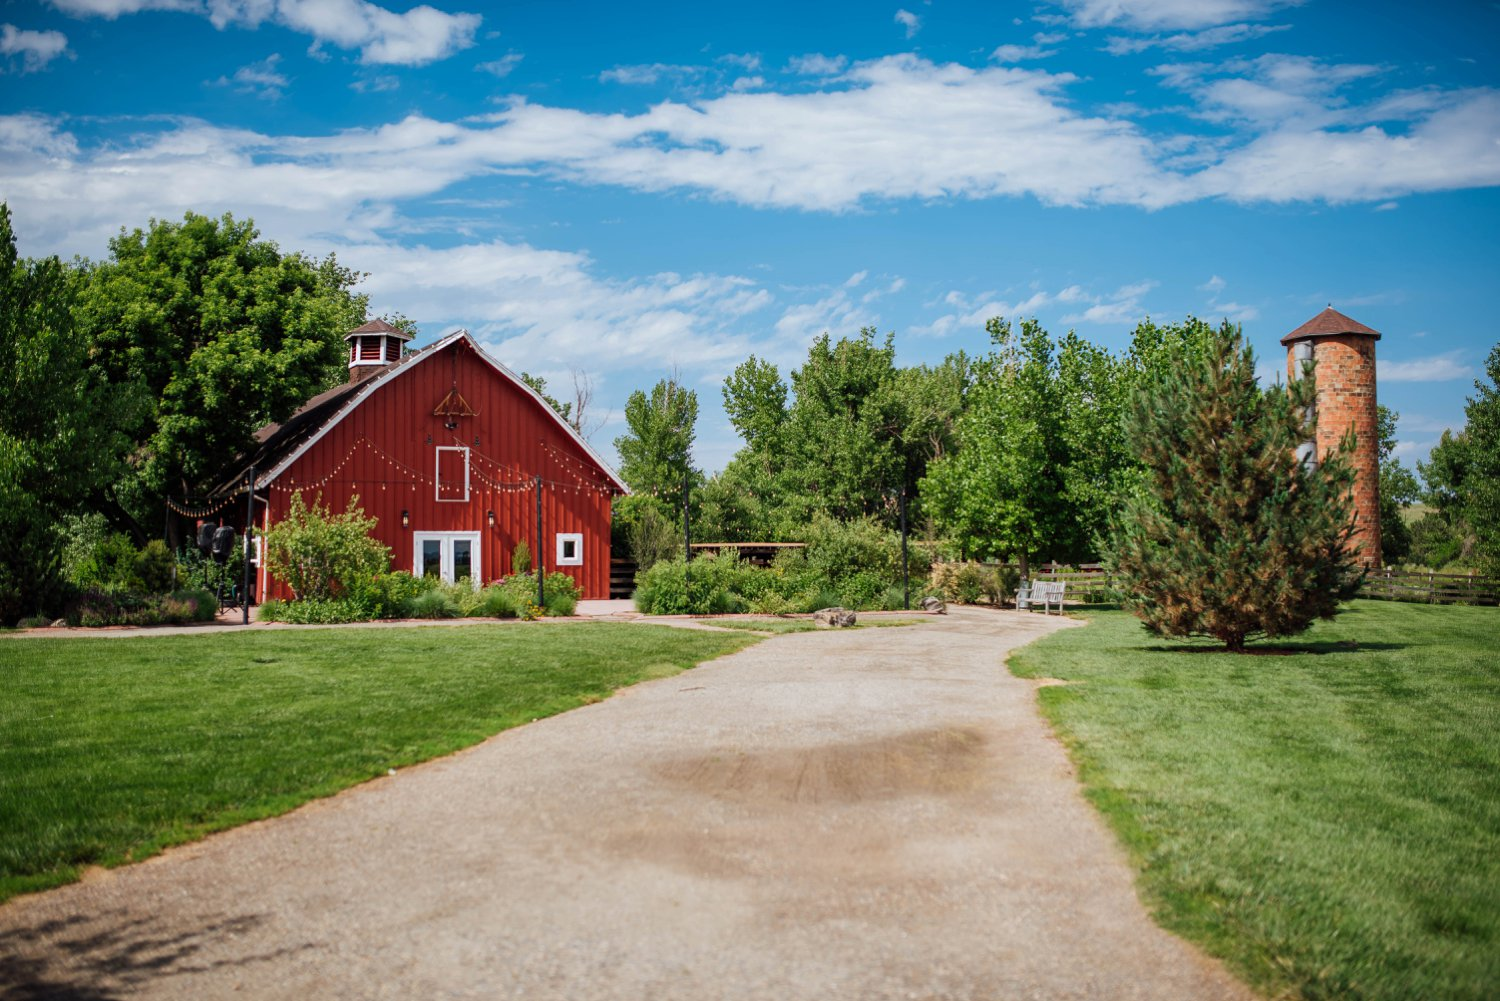 Chatfield farm at the Denver Botanic Gardens at Chatfield is one of the most beautiful wedding venues in Colorado with its signature bright red barn.Photo by Maddie Mae Photography